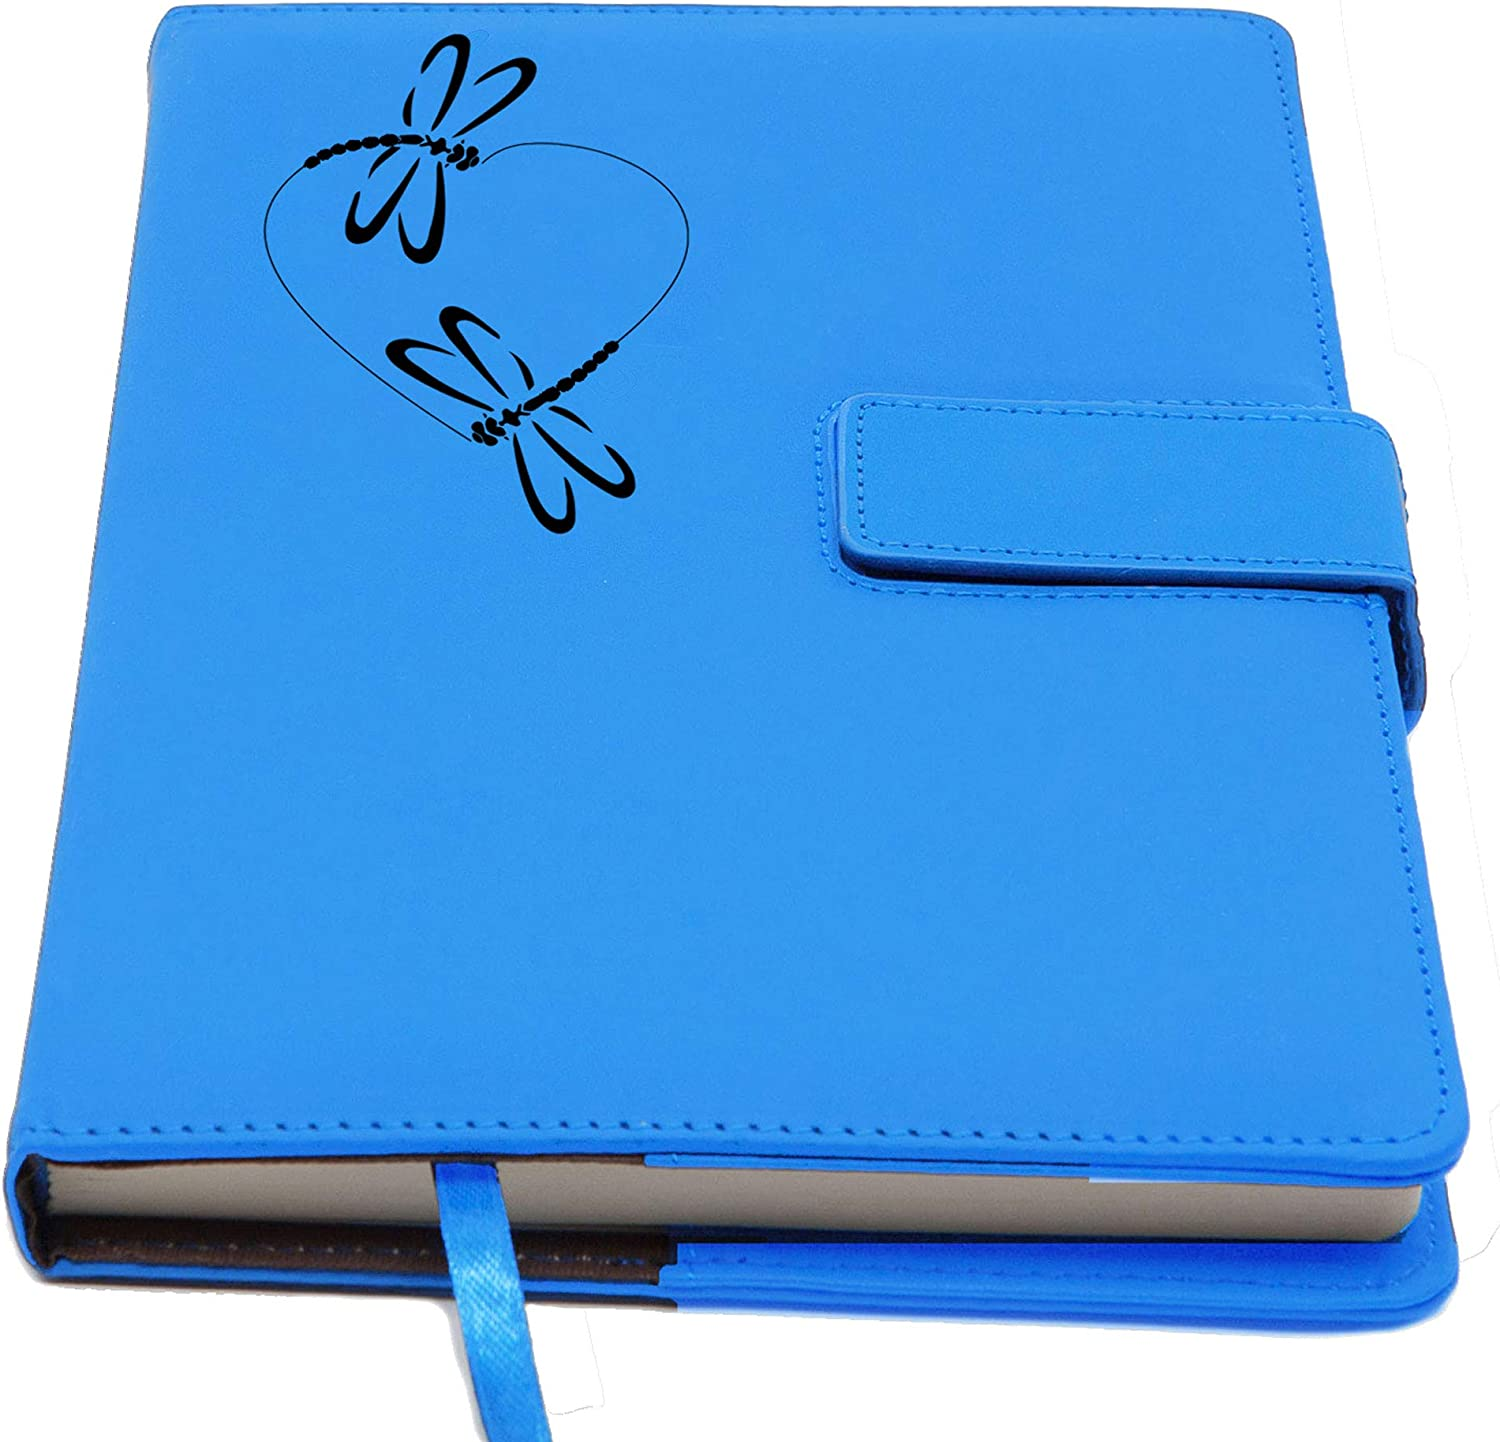 The Dragonfly Heart Refillable Writing Journal | Magnetic Faux Leather Journal, 5 x 8 Inch, 200 Lined Pages Travel Personal Diary, Quality Notebooks Journals for Men and Women from The Amazing Office…